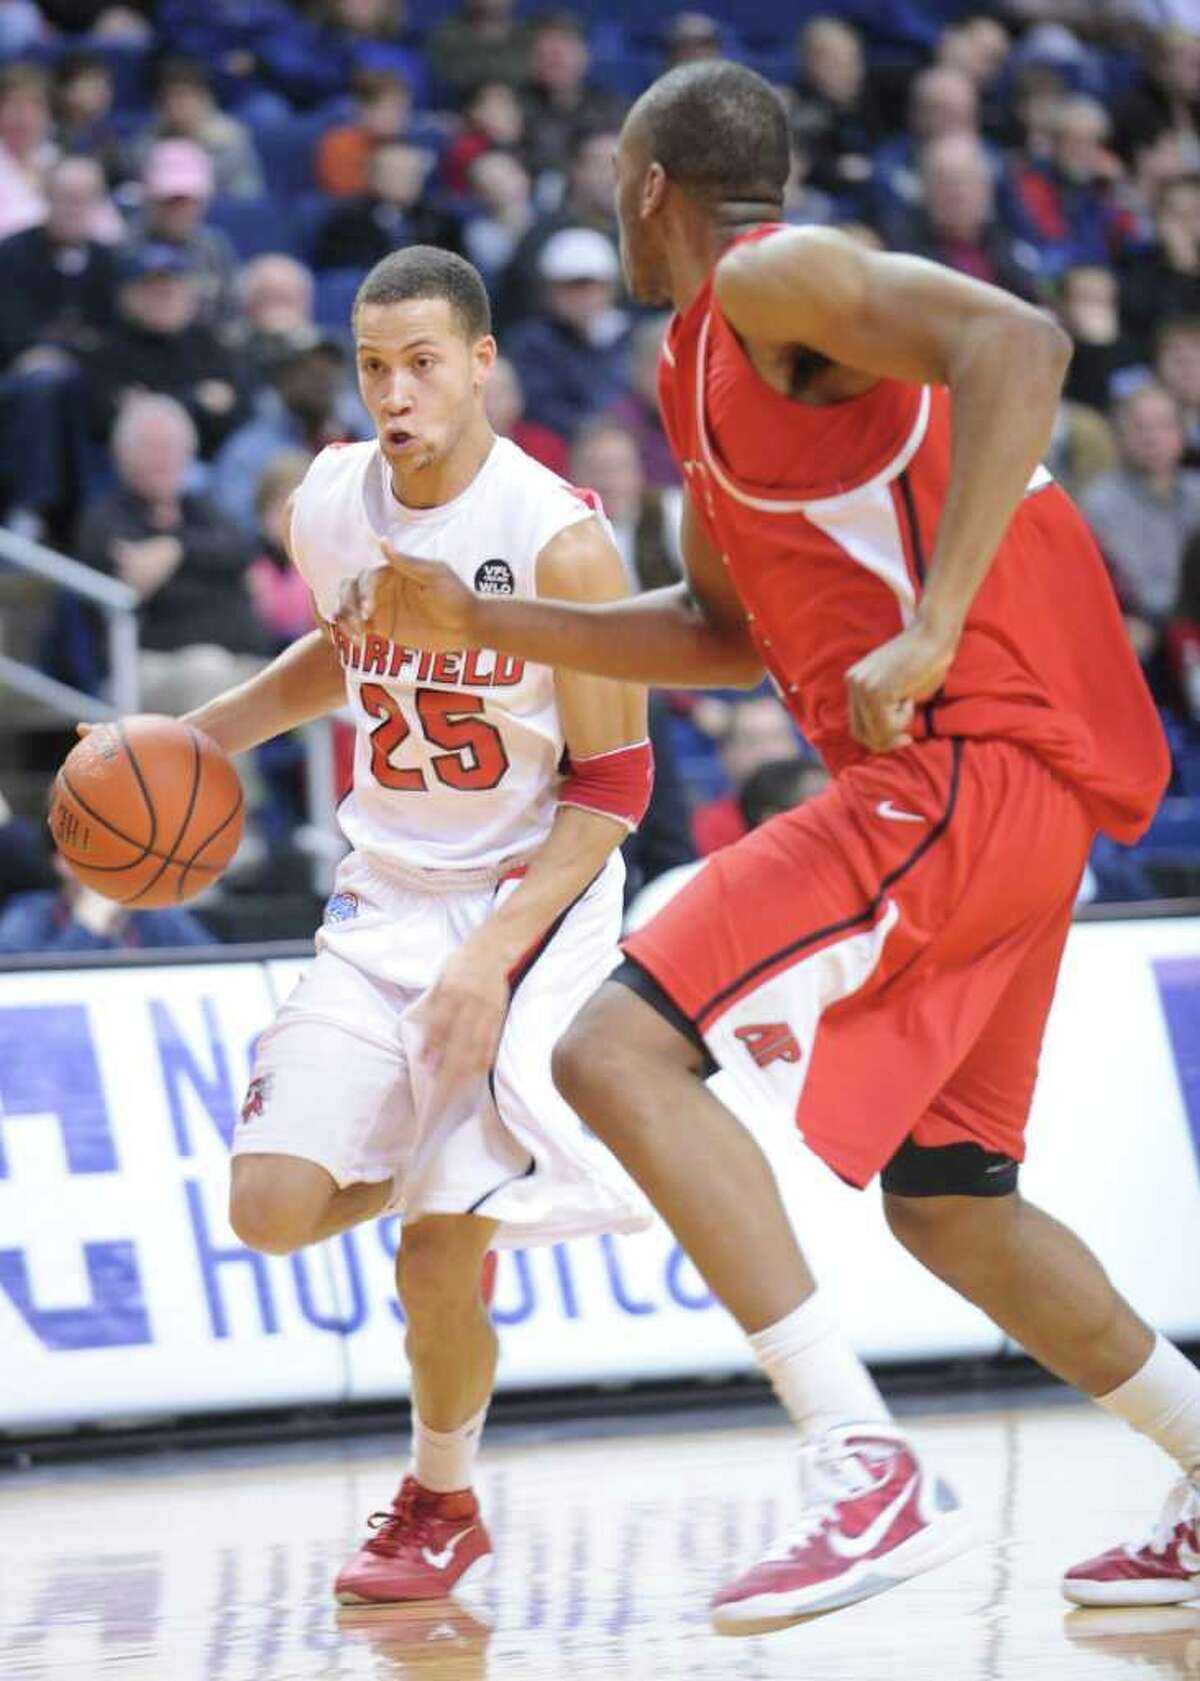 Fairfield University hosts Austin Peay at the Webster Bank Arena at Harbor Yard in Bridgeport, Conn. Saturday, Feb. 19, 2011.